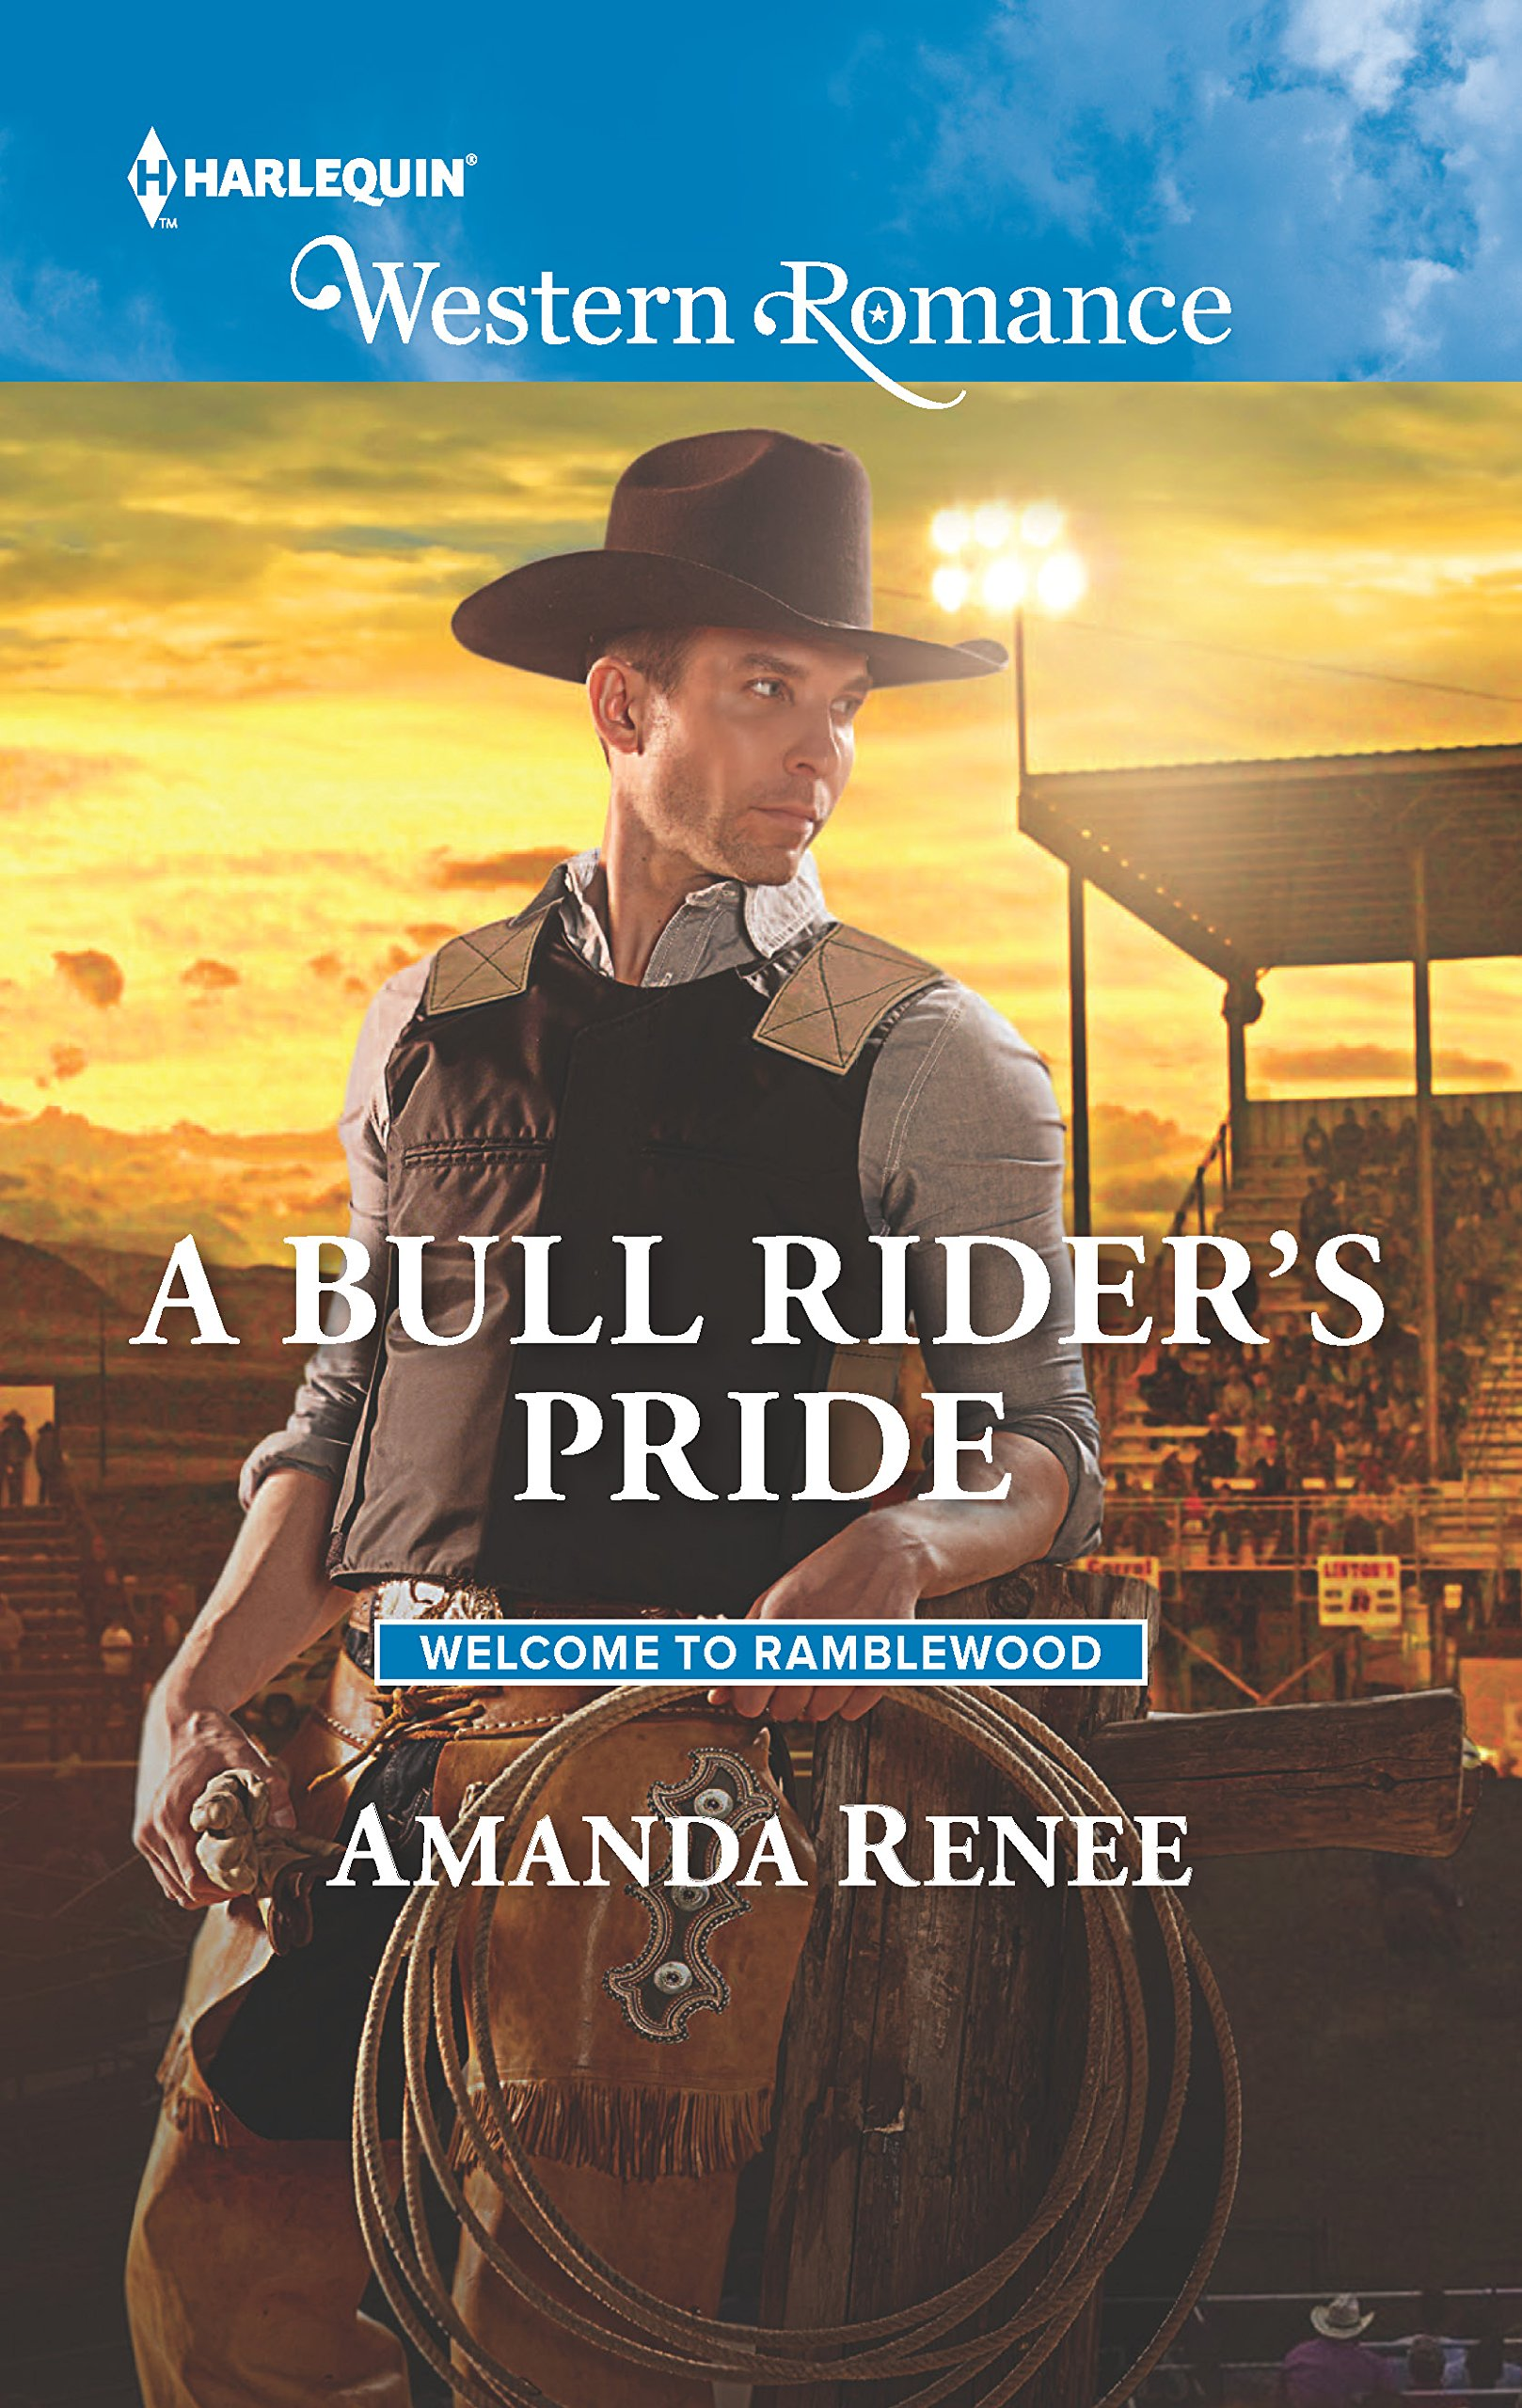 Bull Riders Pride Welcome Ramblewood